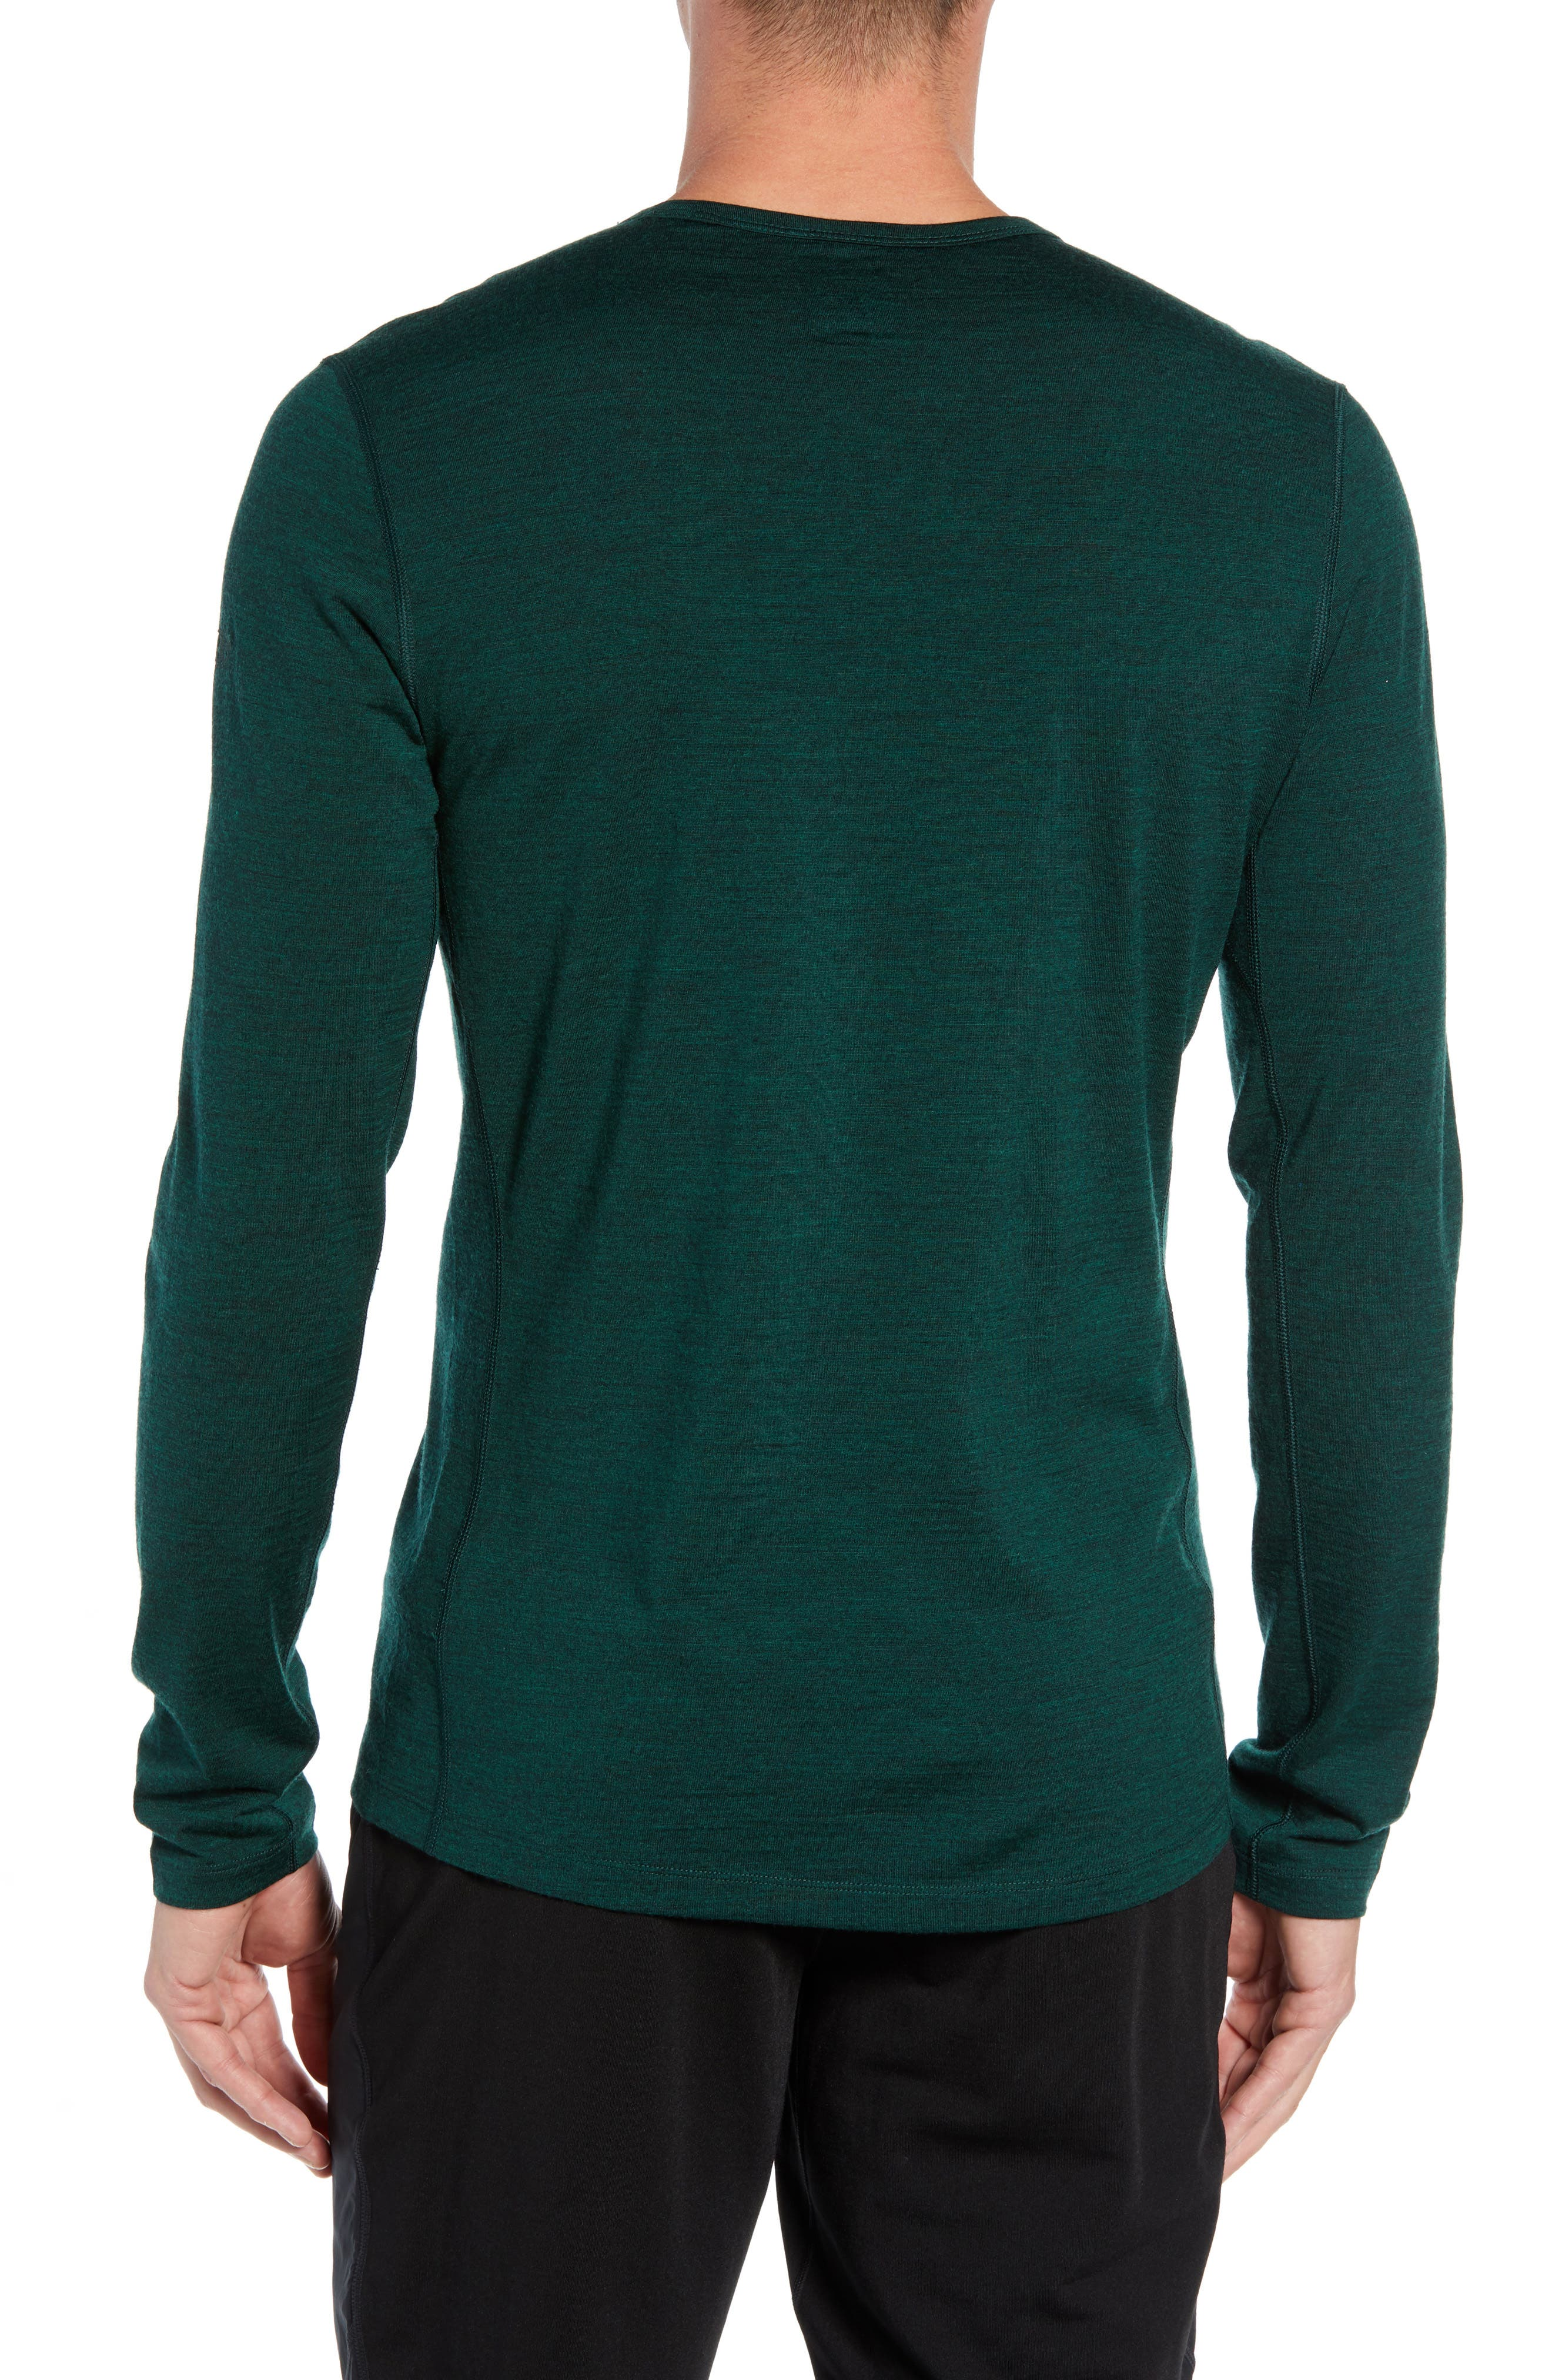 Oasis Slim Merino Wool T-Shirt,                             Alternate thumbnail 2, color,                             IMPERIAL HEATHER